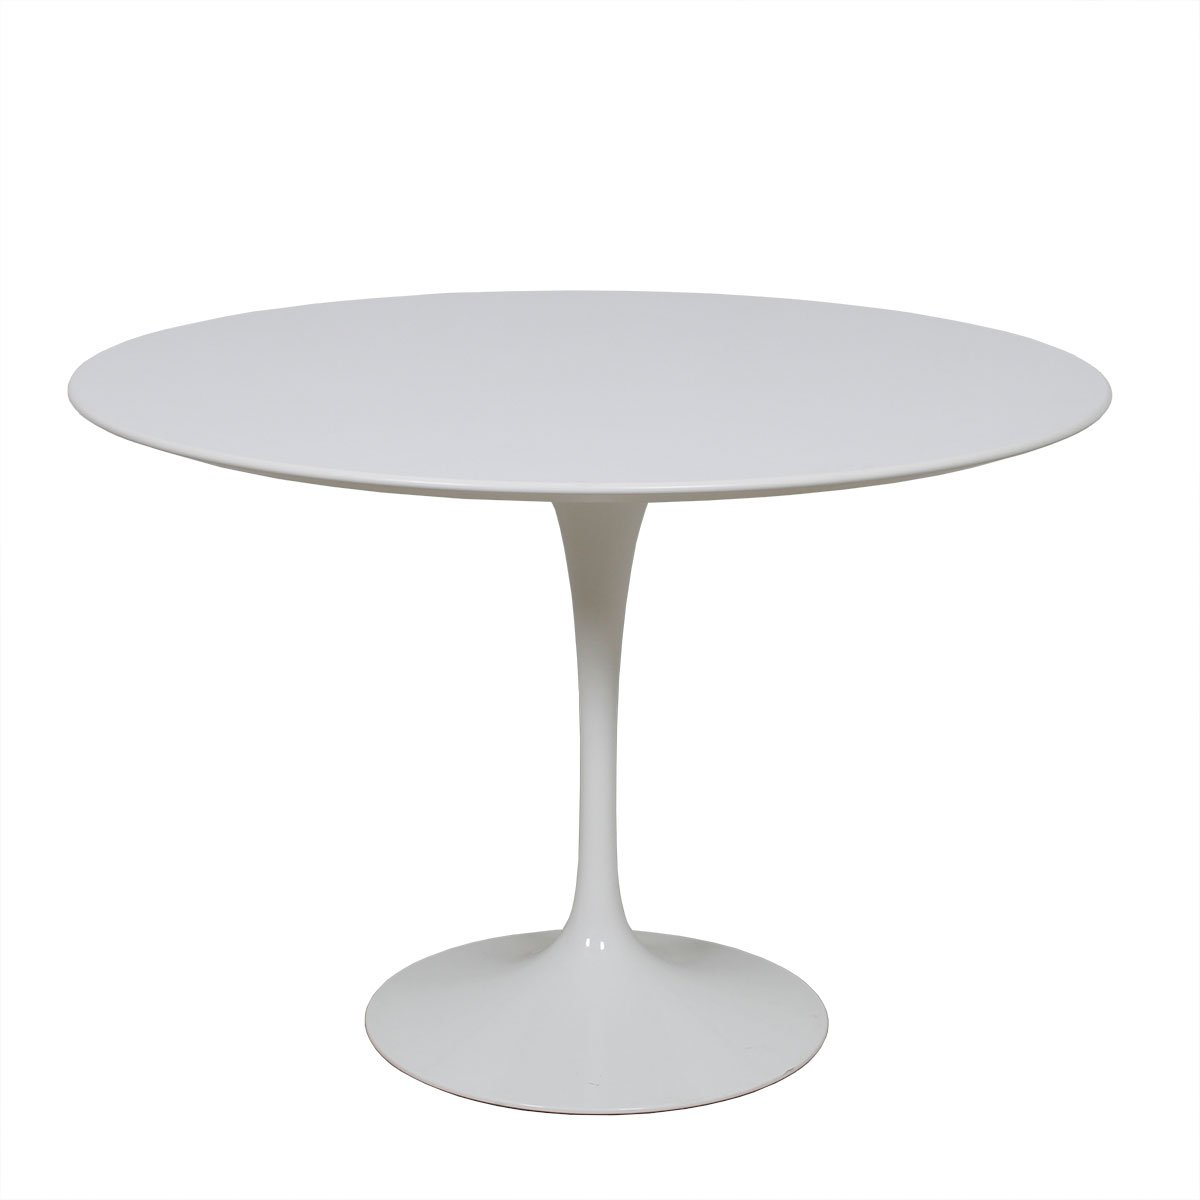 Eero Saarinen Knoll Tulip Dining Table